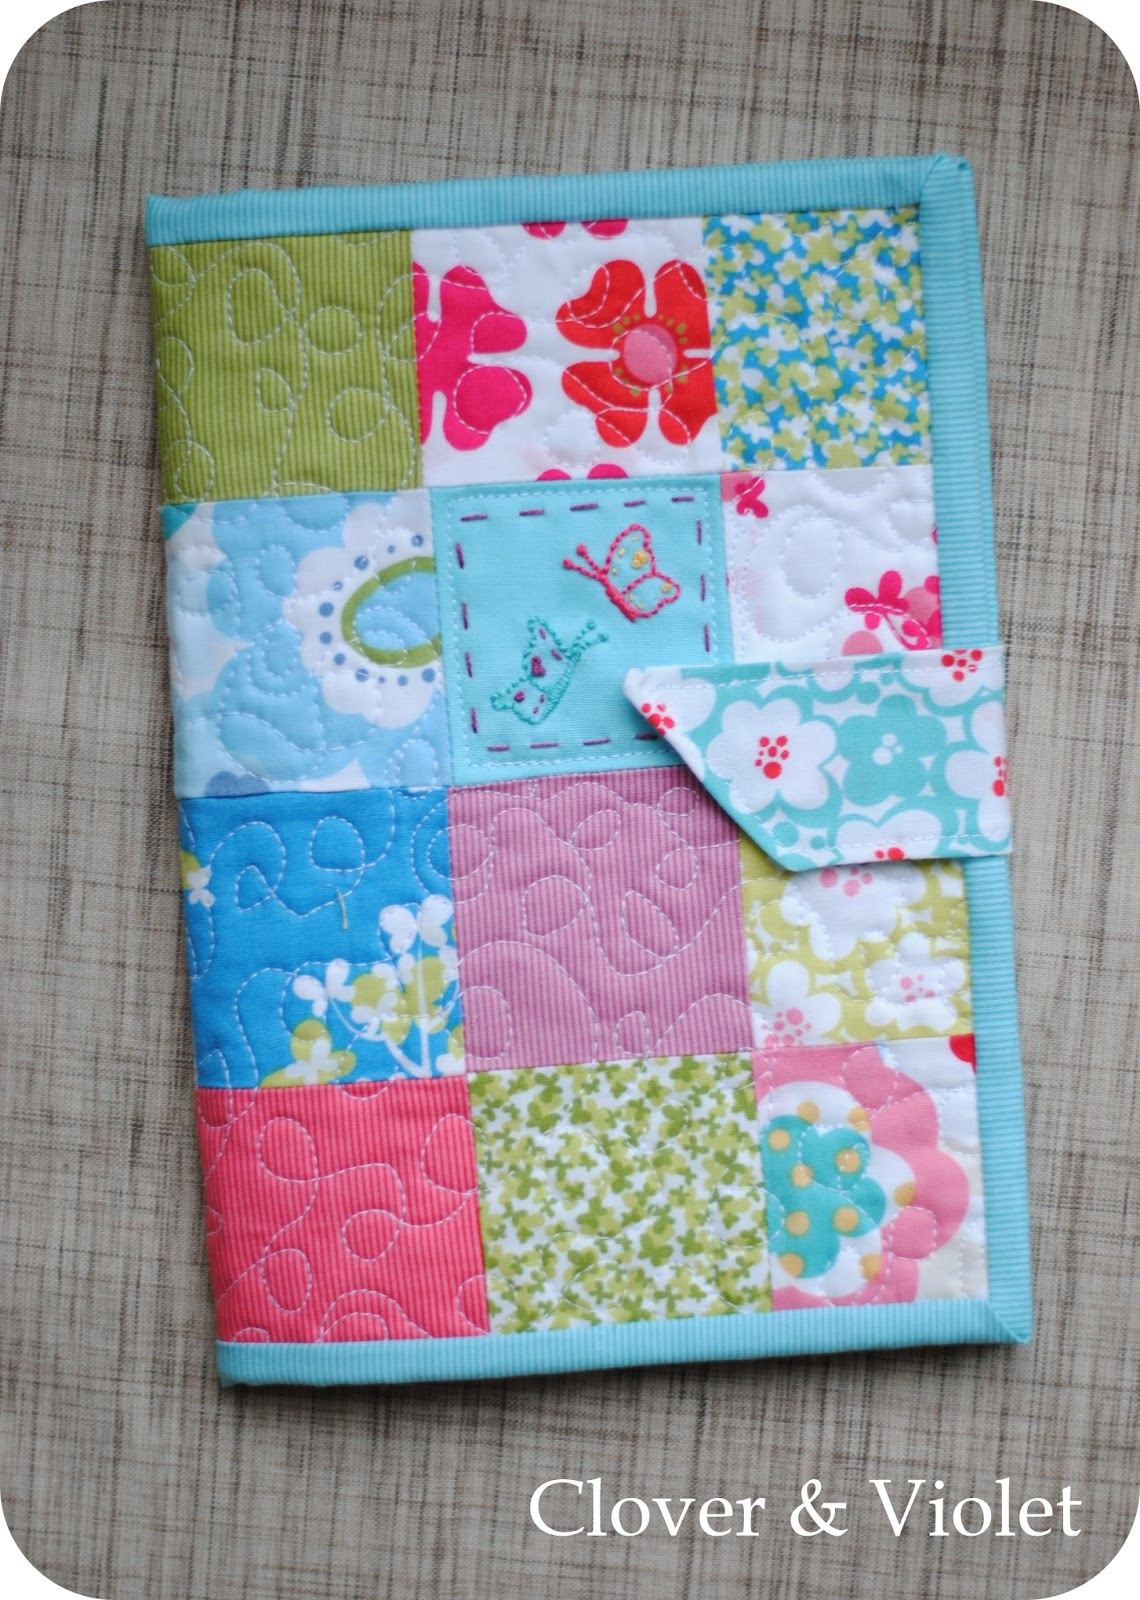 Quilted Book Cover Pattern Free : Clover violet — kindle keyborad book style cover